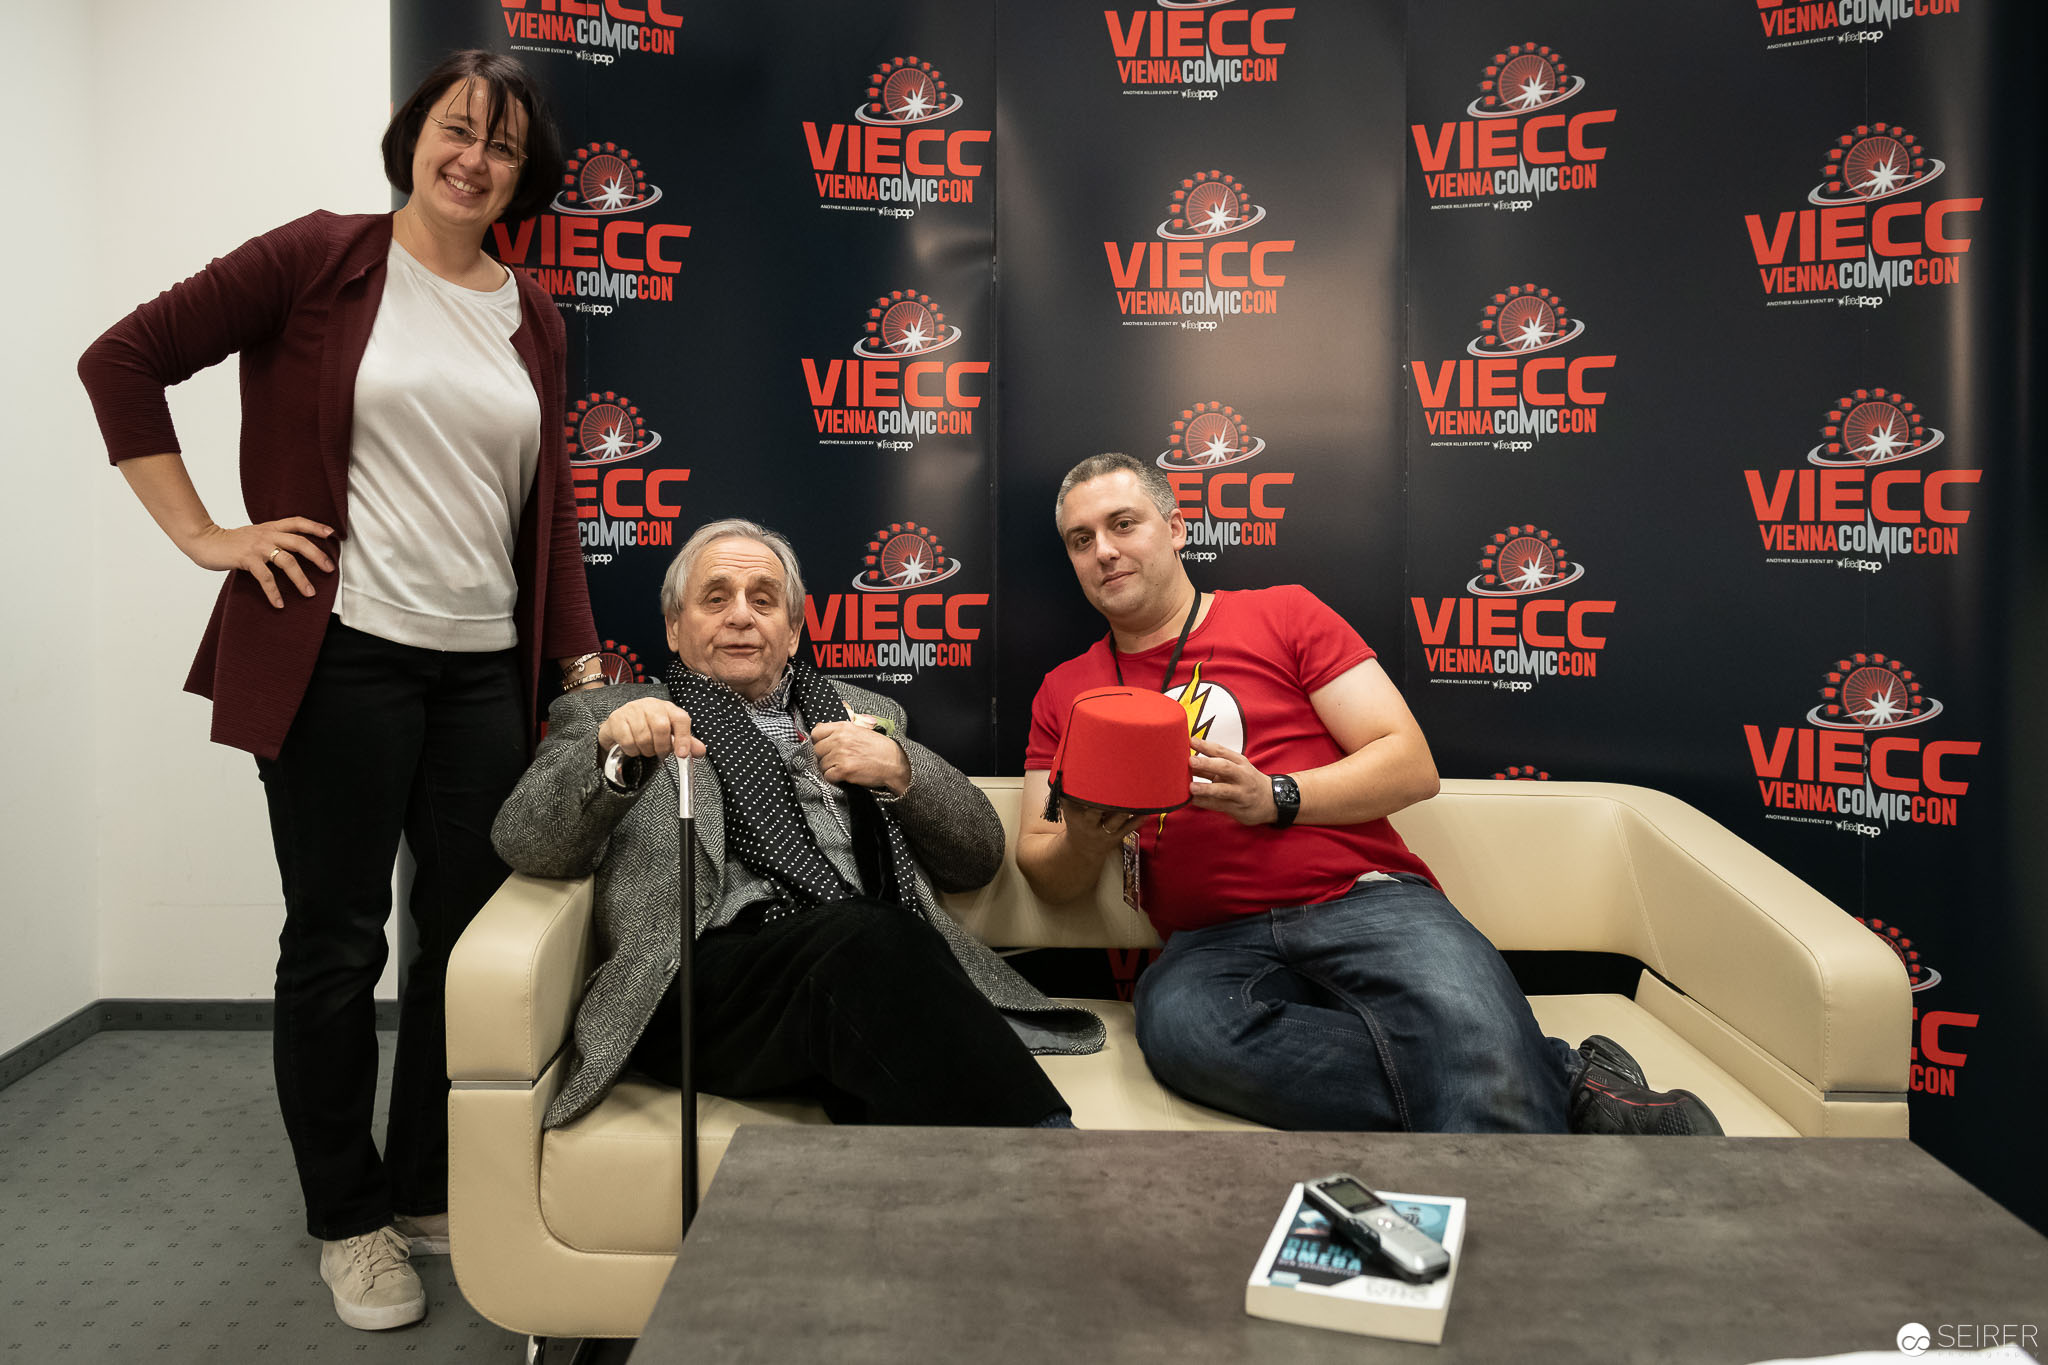 Interview with Sylvester McCoy at the VIECC 2018